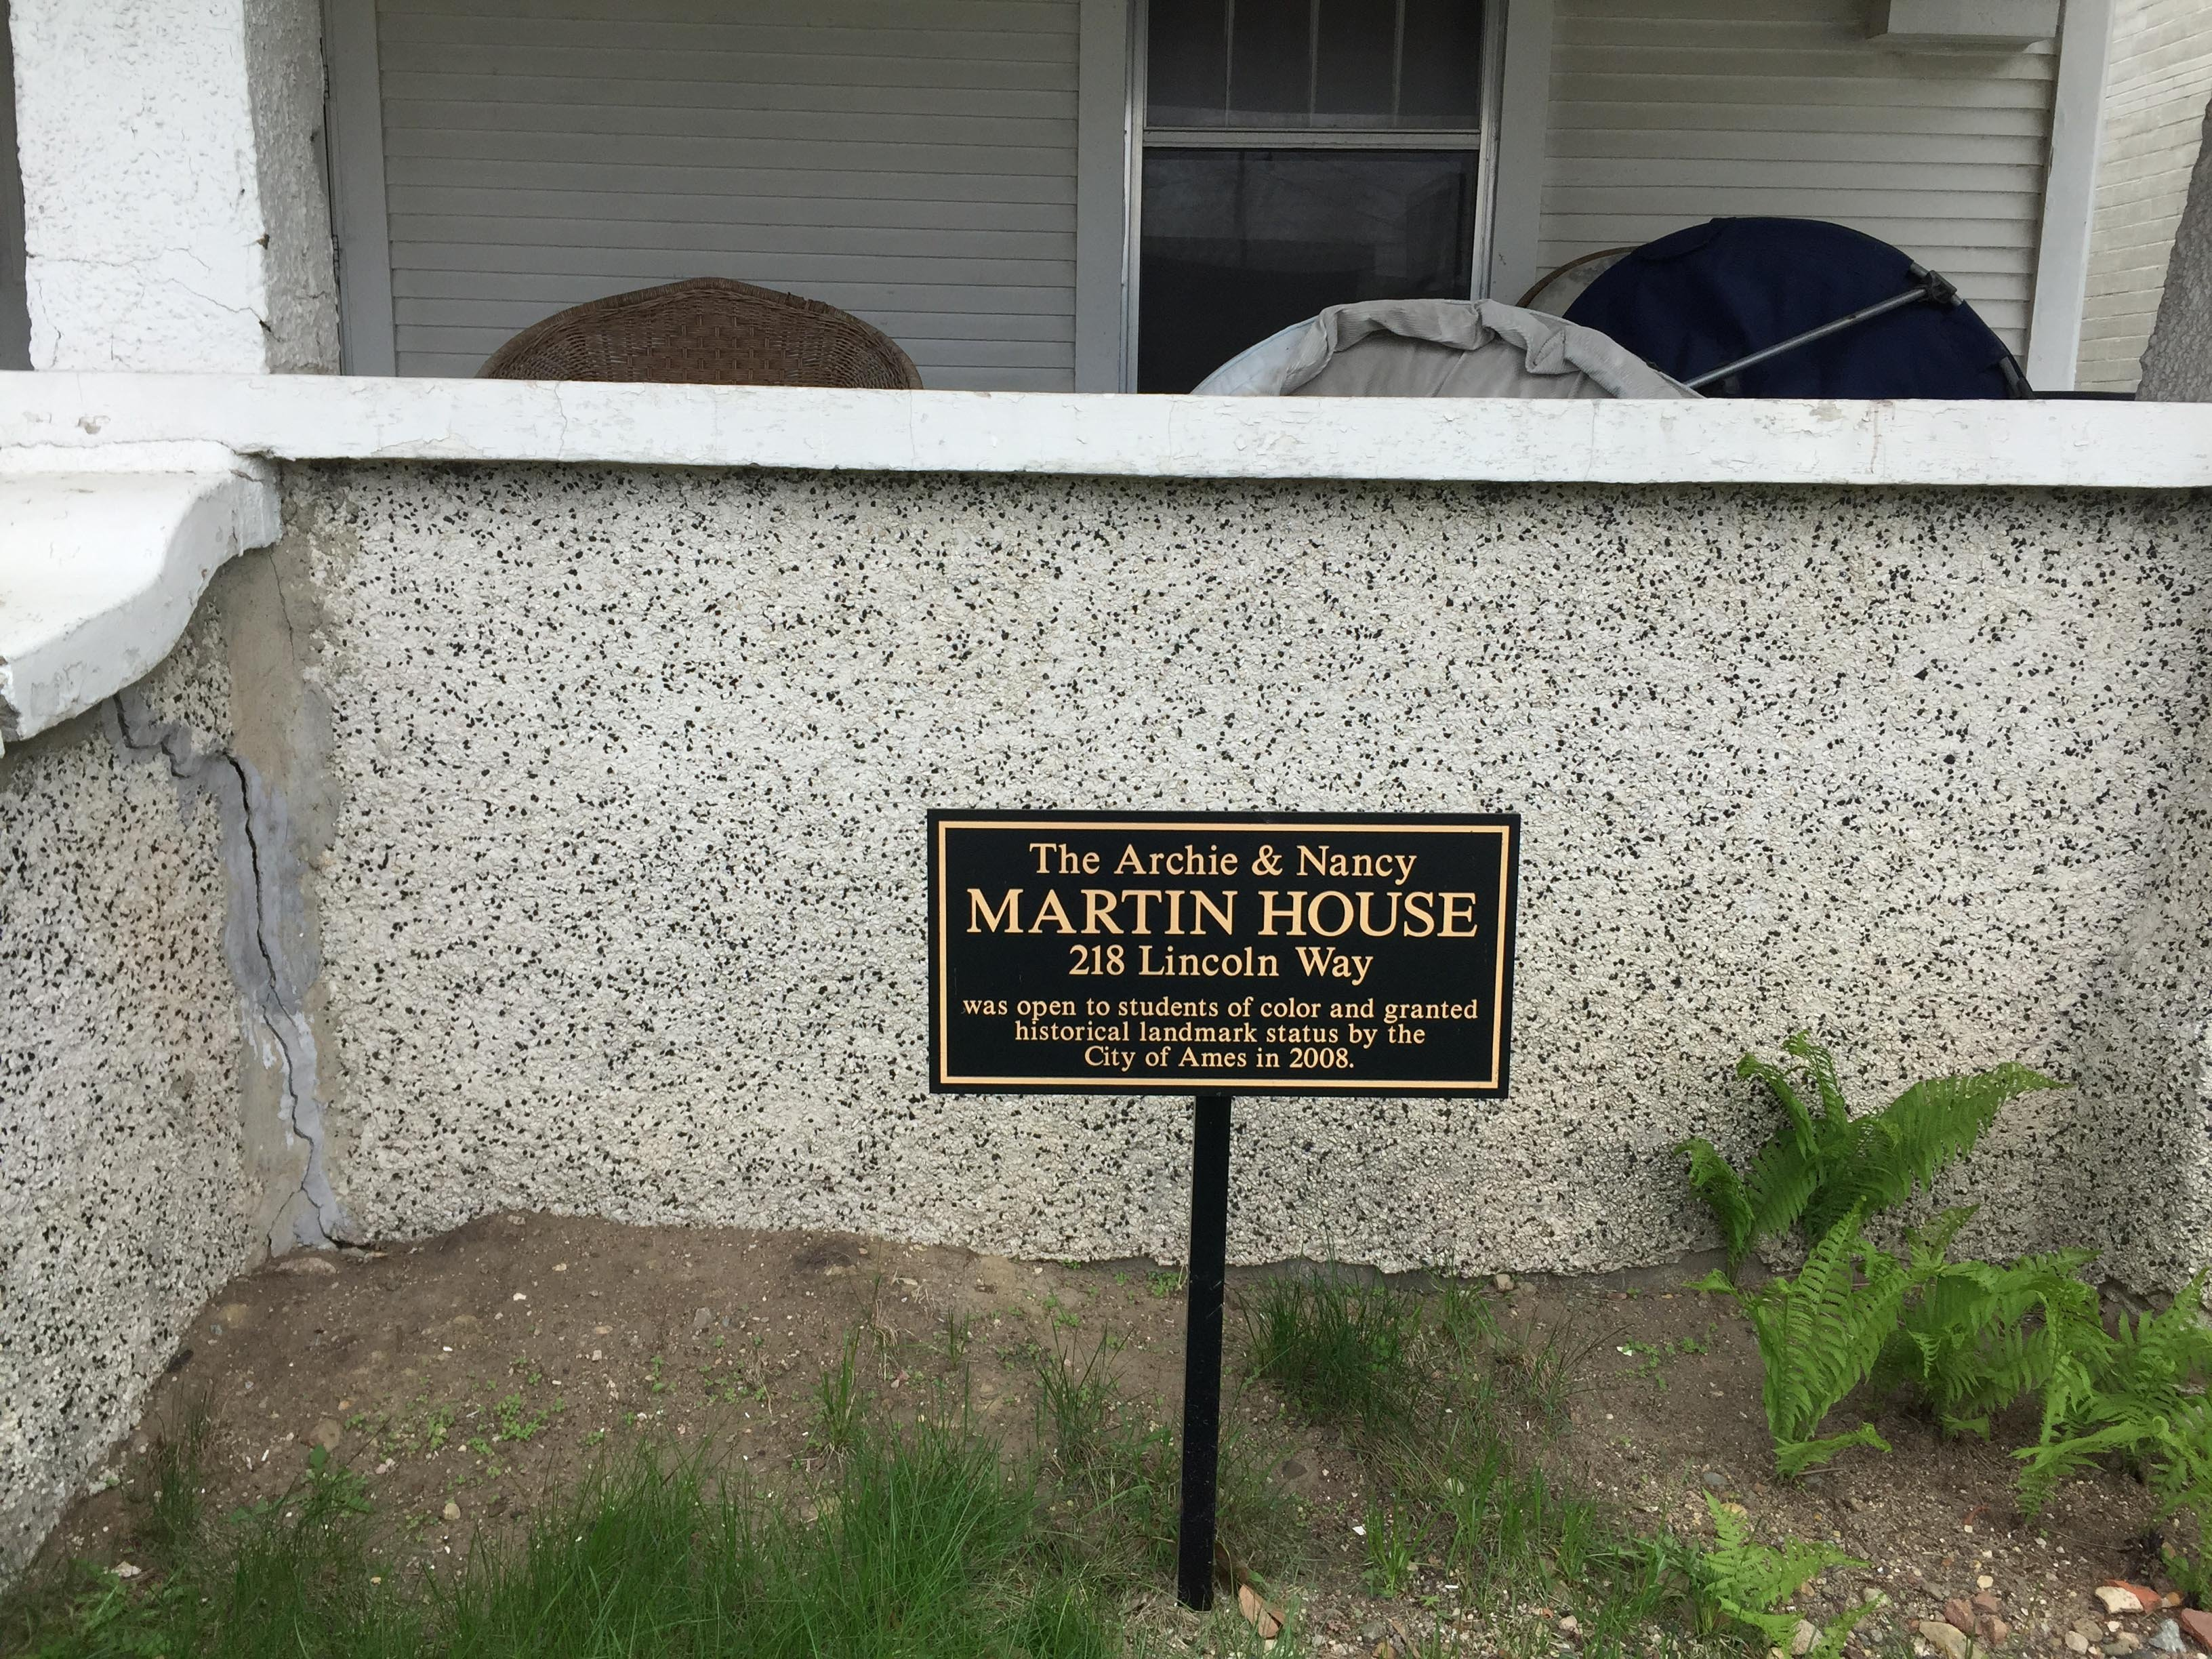 Martin House, detail showing City of Ames historical plaque.